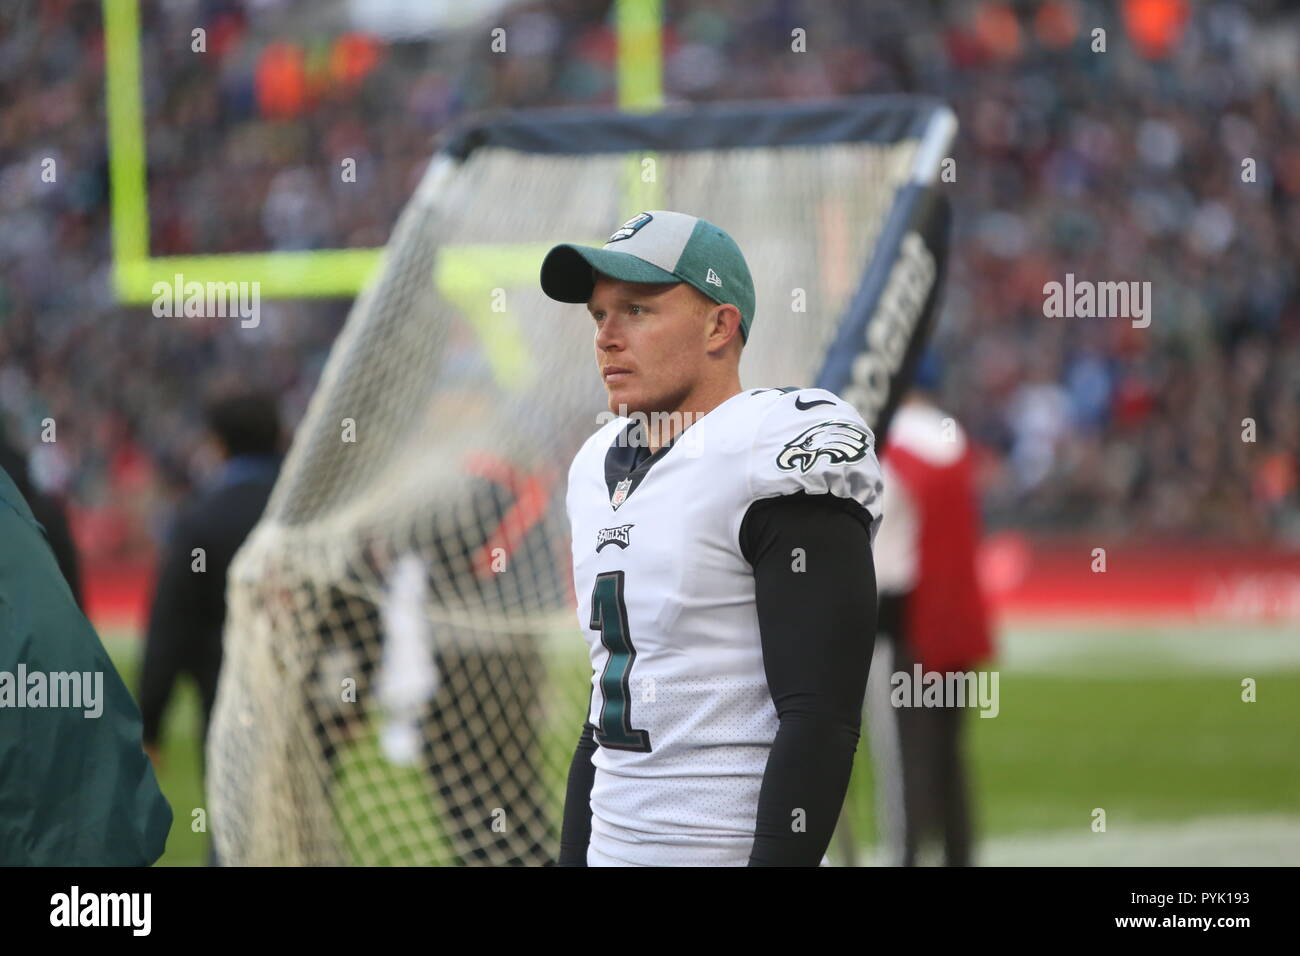 London, UK. 28 October 2018.   Philadelphia Eagles Punter Cameron Johnston (1) at the Eagles at Jaguars - credit Glamourstock Credit: glamourstock/Alamy Live News - Stock Image